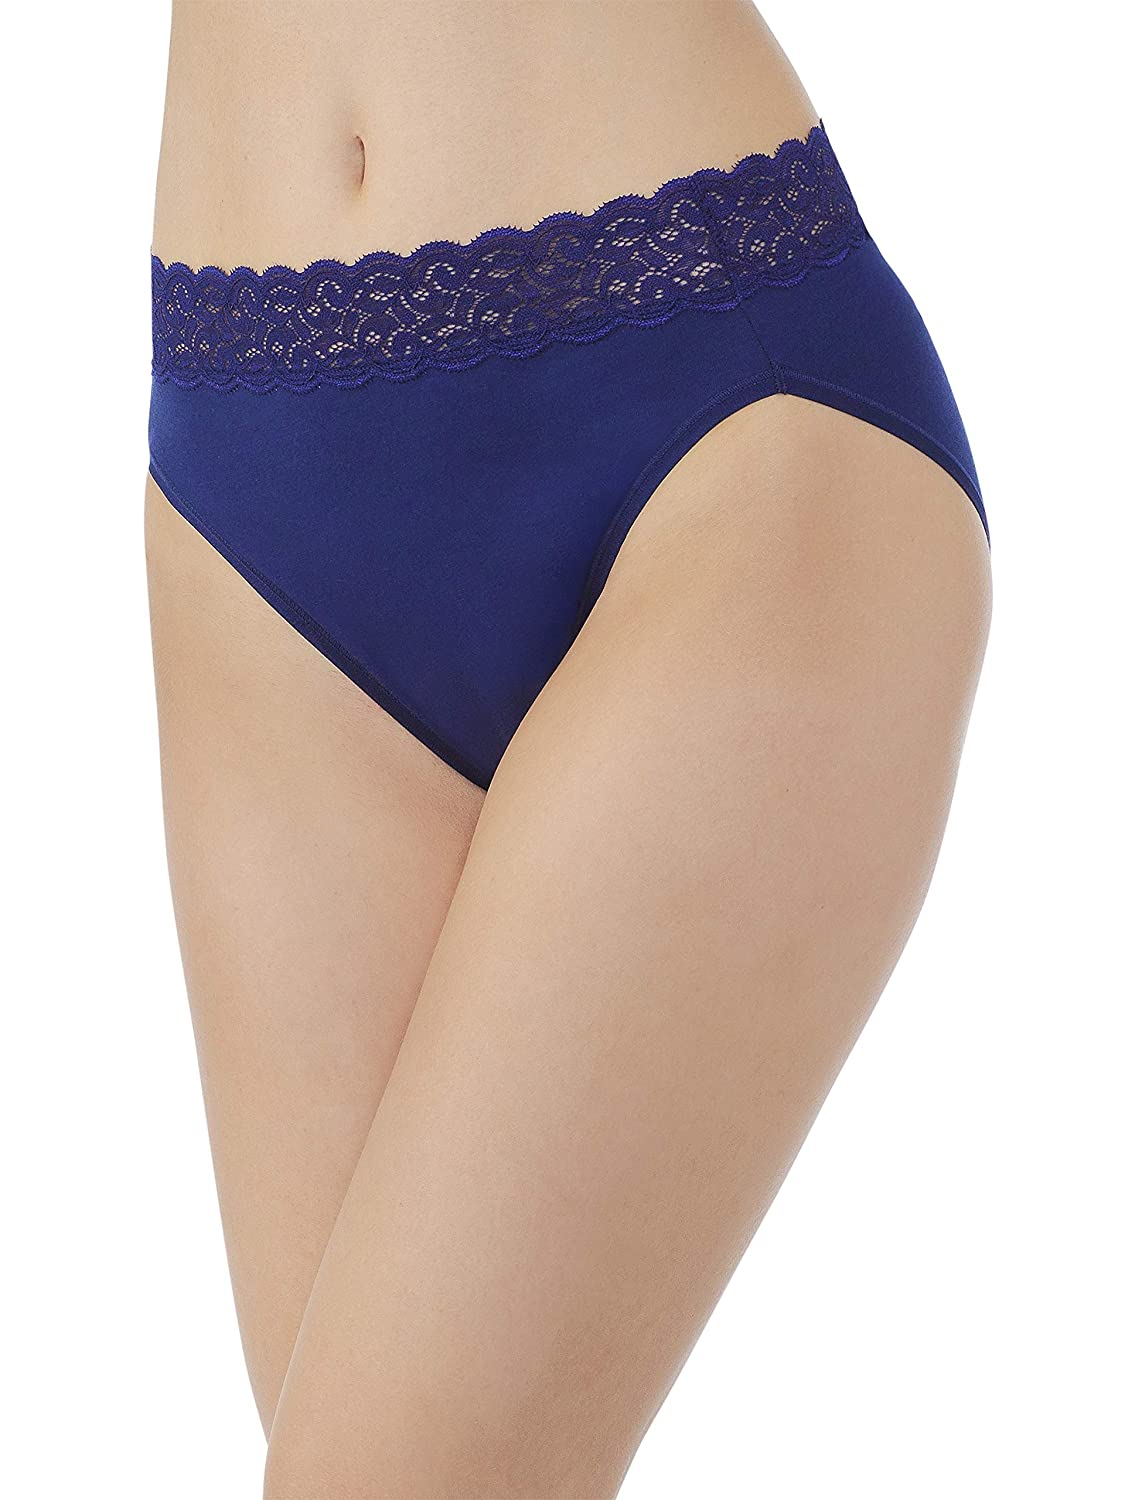 Vanity Fair Womens Standard Flattering Lace Cotton Stretch Hi Cut Panty 13395